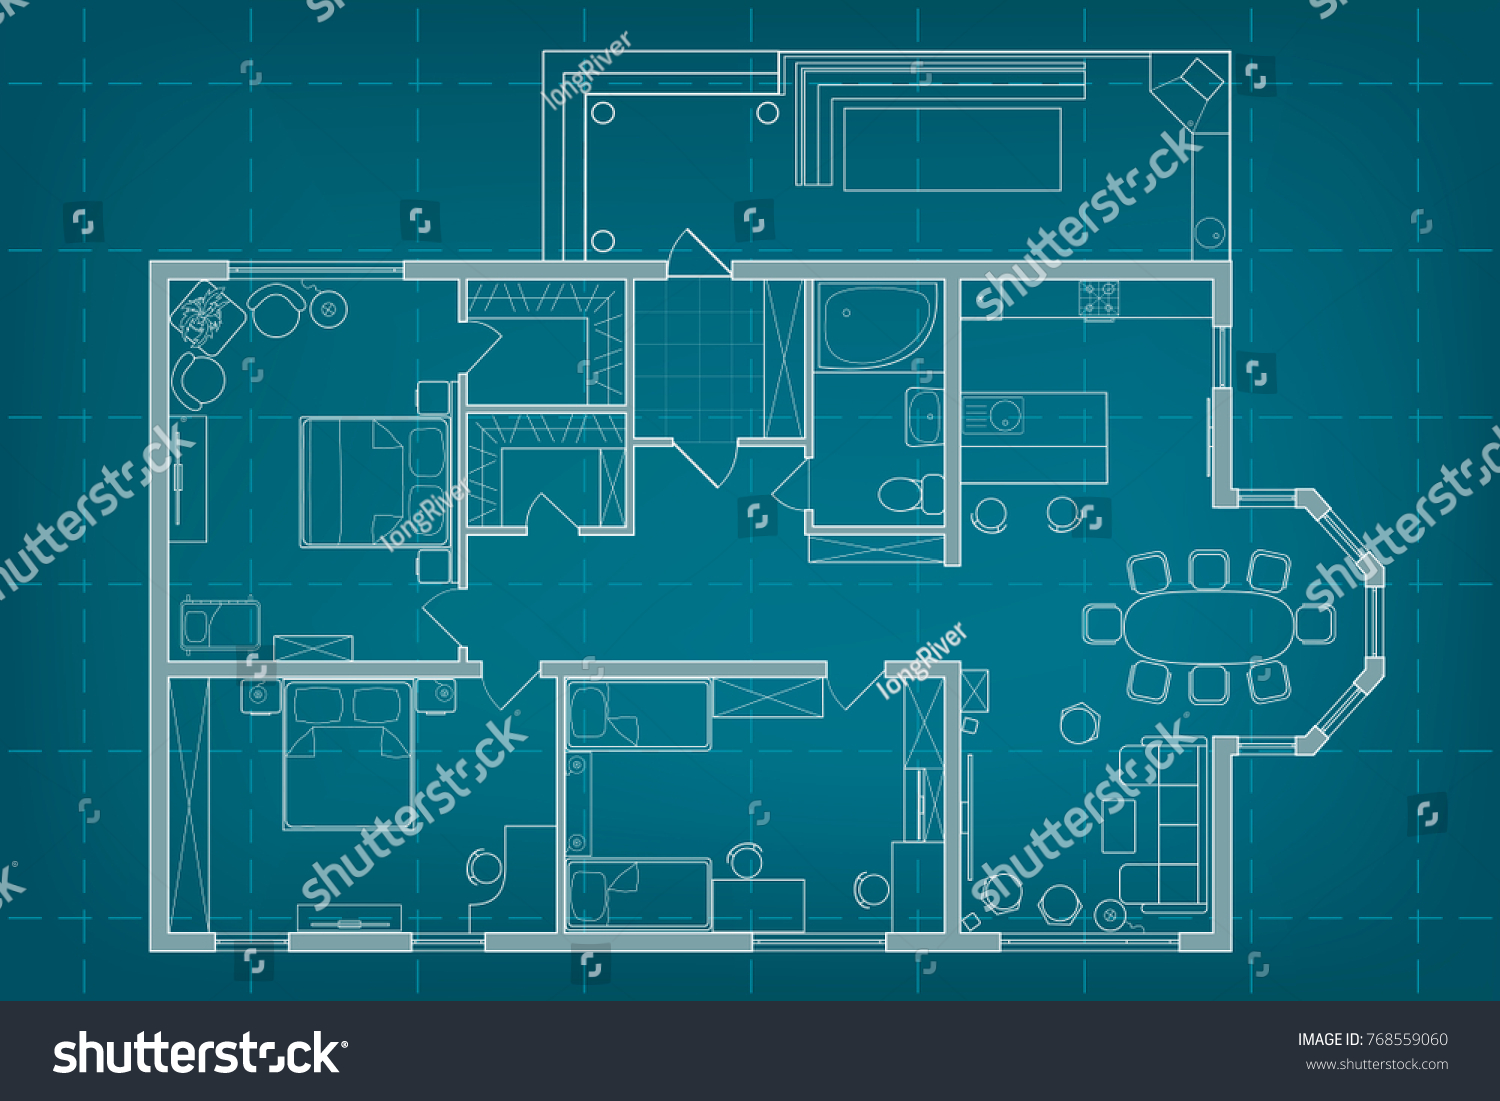 Vector architectural blueprint top view floor stock vector vector architectural blueprint top view floor plan of the house layout and furniture on background malvernweather Choice Image